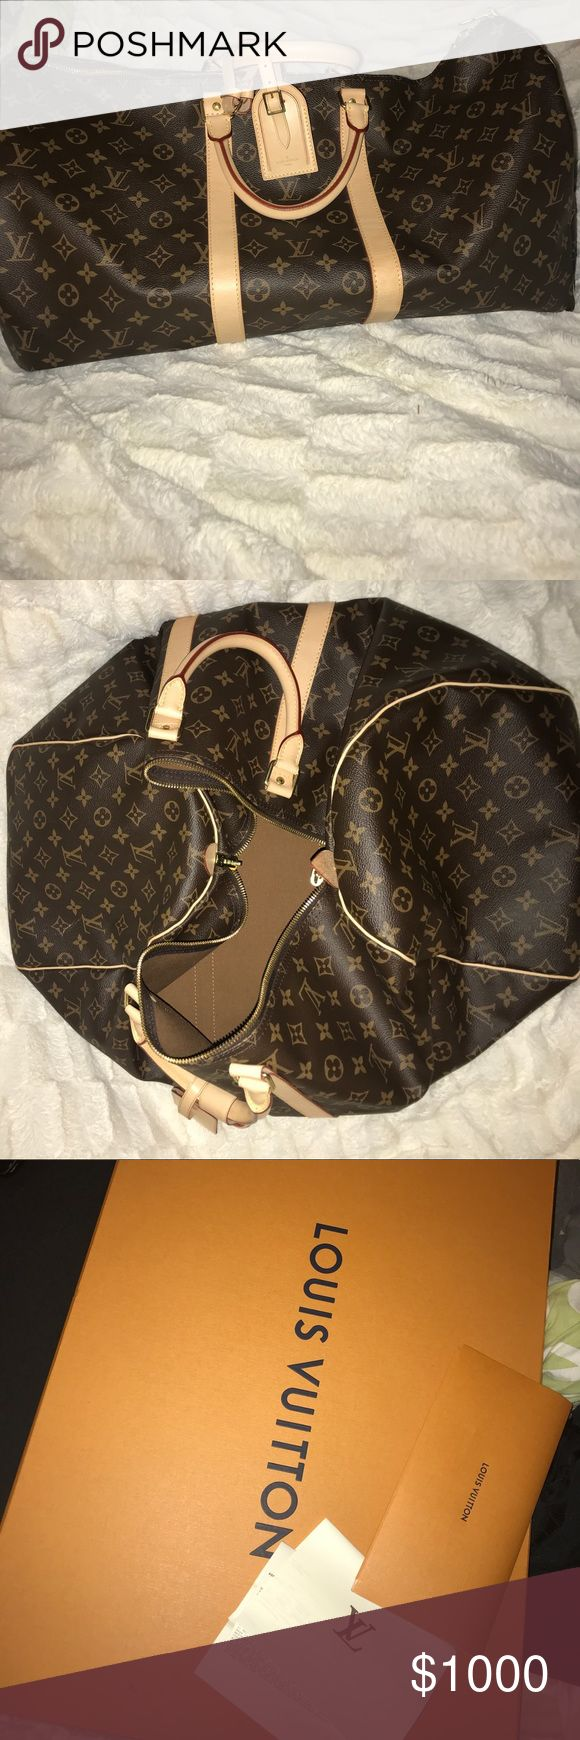 Louis Vuitton Keepall 55 Authentic Louis Vuitton Keepall 55. I purchased in February of 2017 and only used this bag about 5 times- in pristine condition! Meets TSA carry on requirements.  Have original box and care instructions available. Negotiable price, great buy :) Louis Vuitton Bags Travel Bags